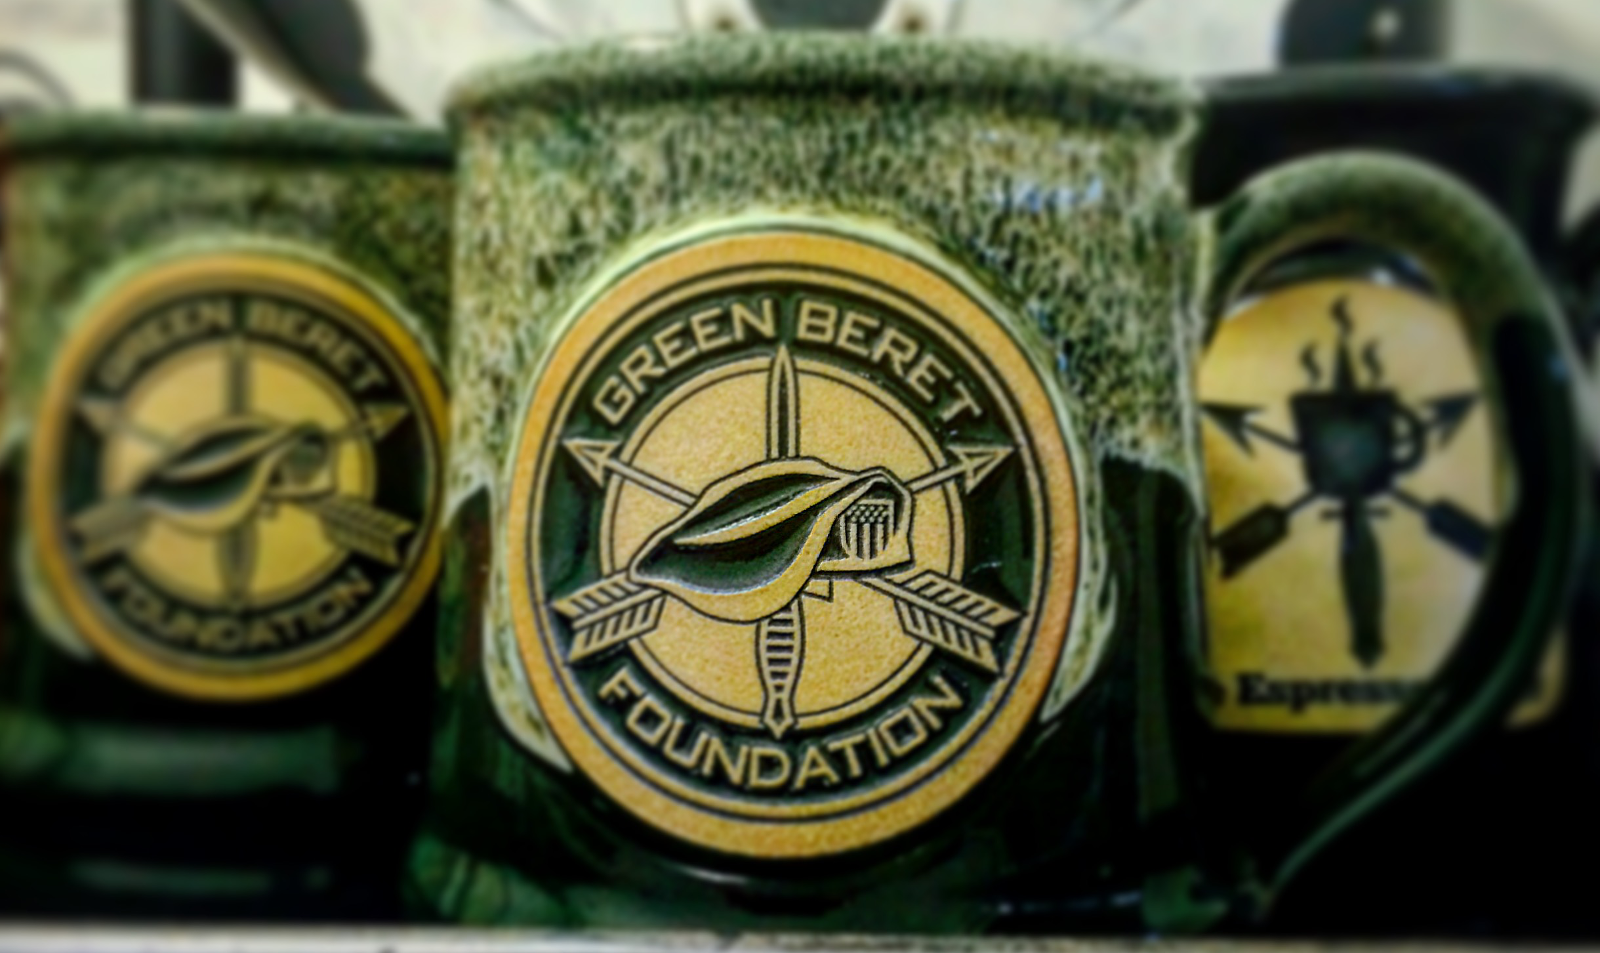 Green Beret Foundation Products